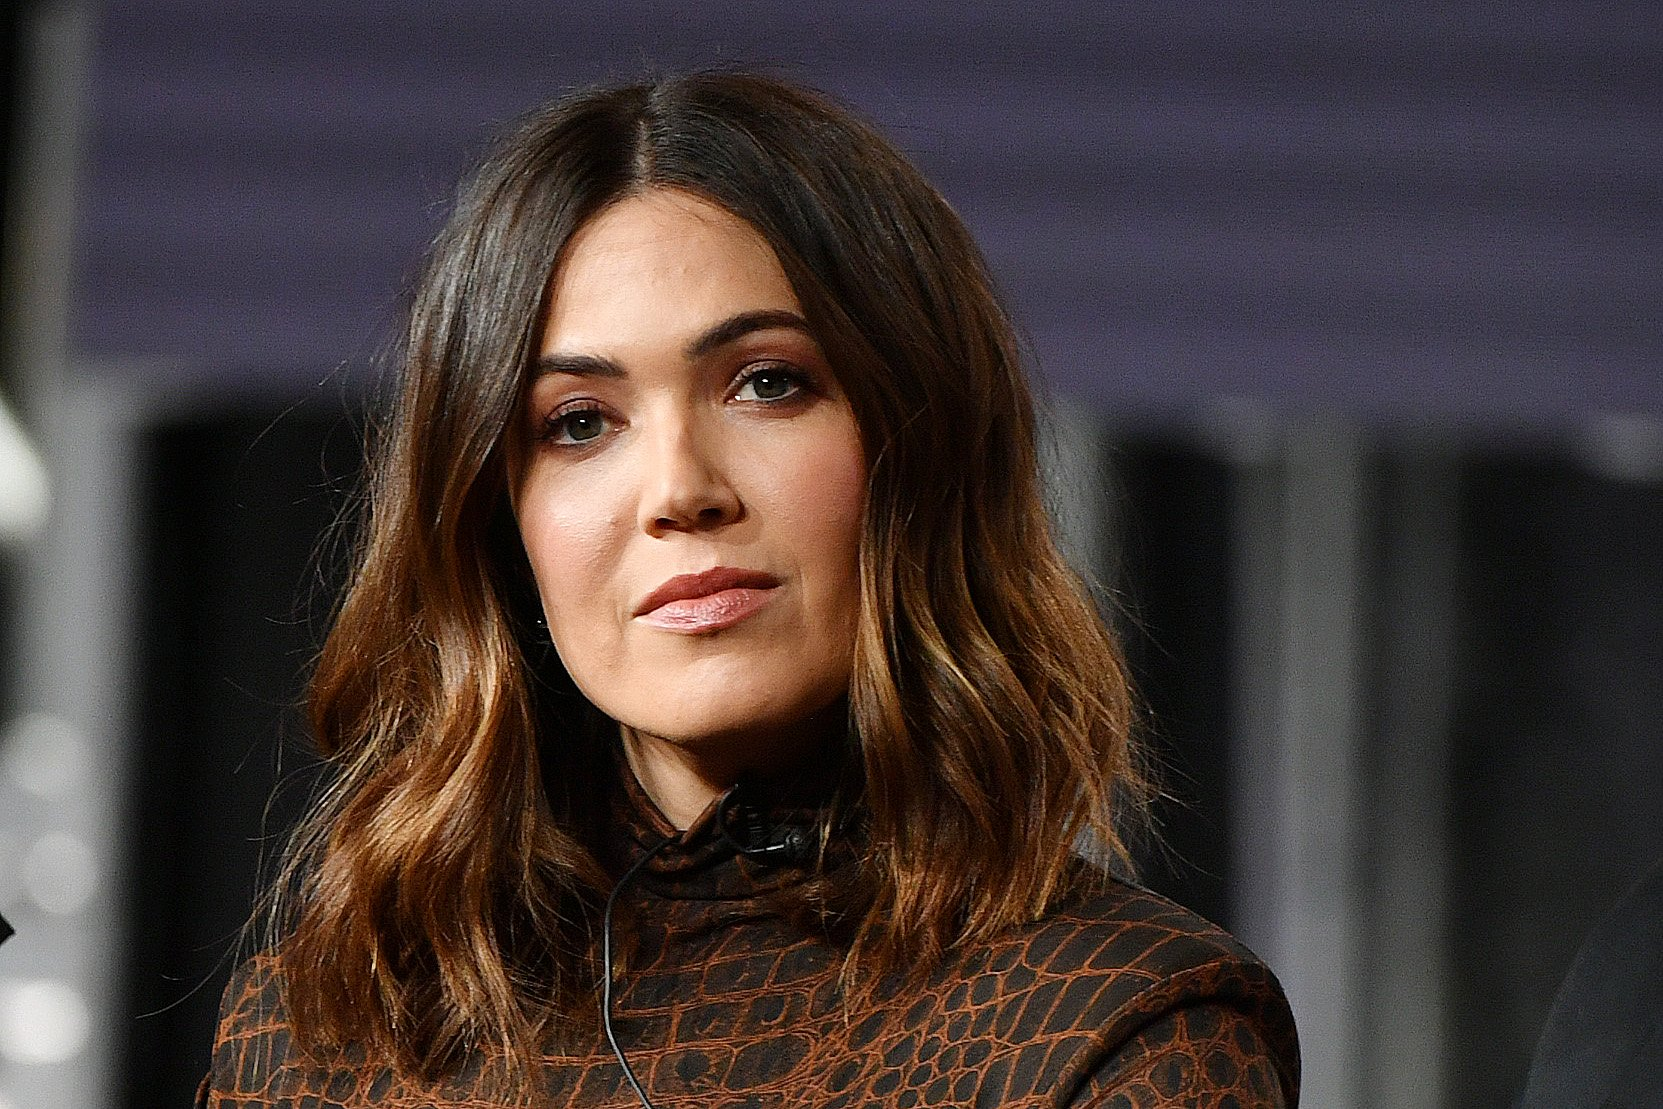 Mandy Moore attend the 2020 Winter TCA Press Tour at The Langham Huntington, Pasadena on January 11, 2020, in Pasadena, California. | Source: Getty Images.